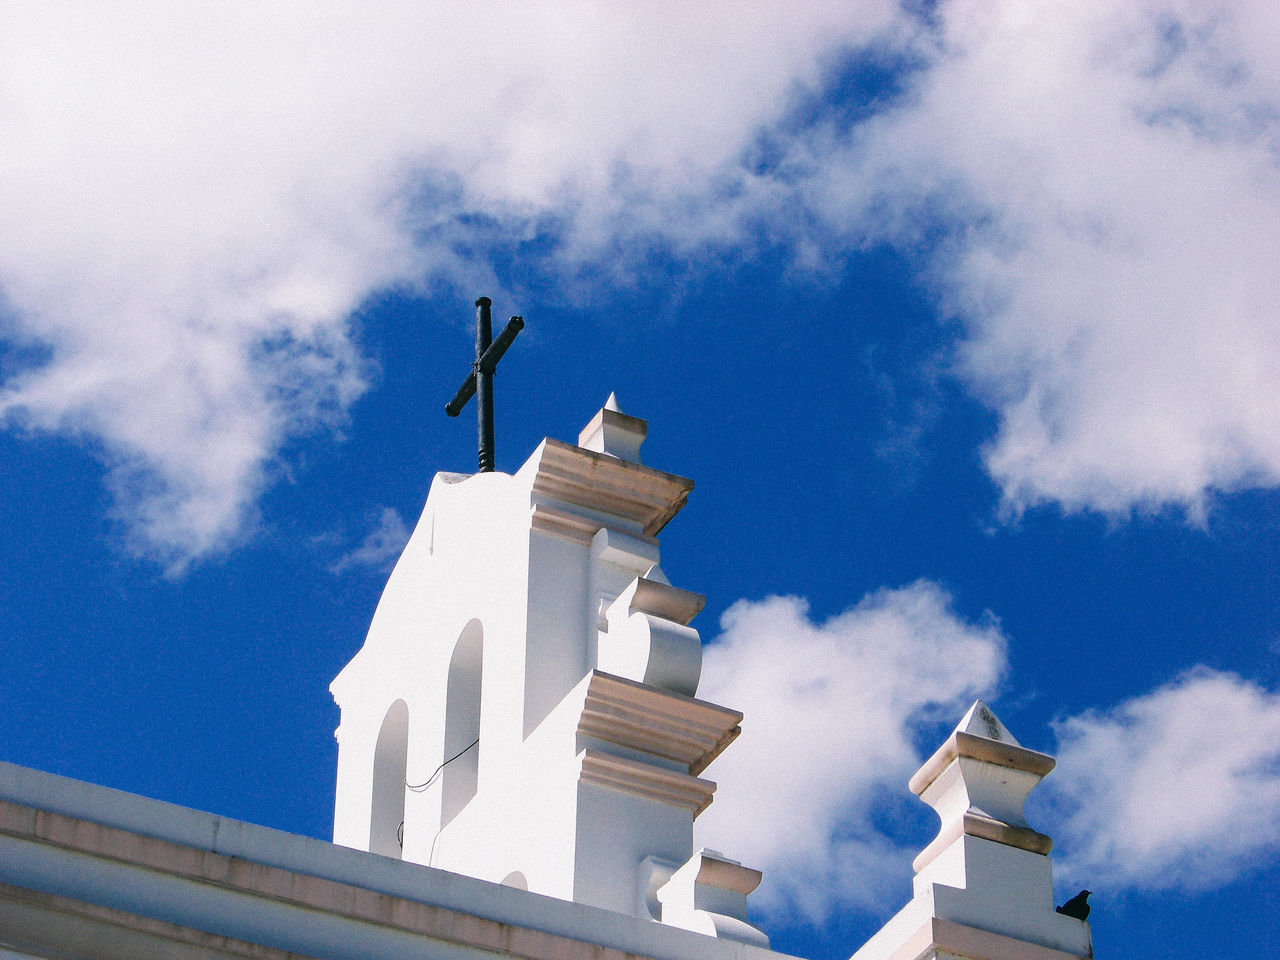 architecture, sky, built structure, cloud - sky, low angle view, statue, building exterior, day, outdoors, religion, sculpture, place of worship, spirituality, no people, whitewashed, animal themes